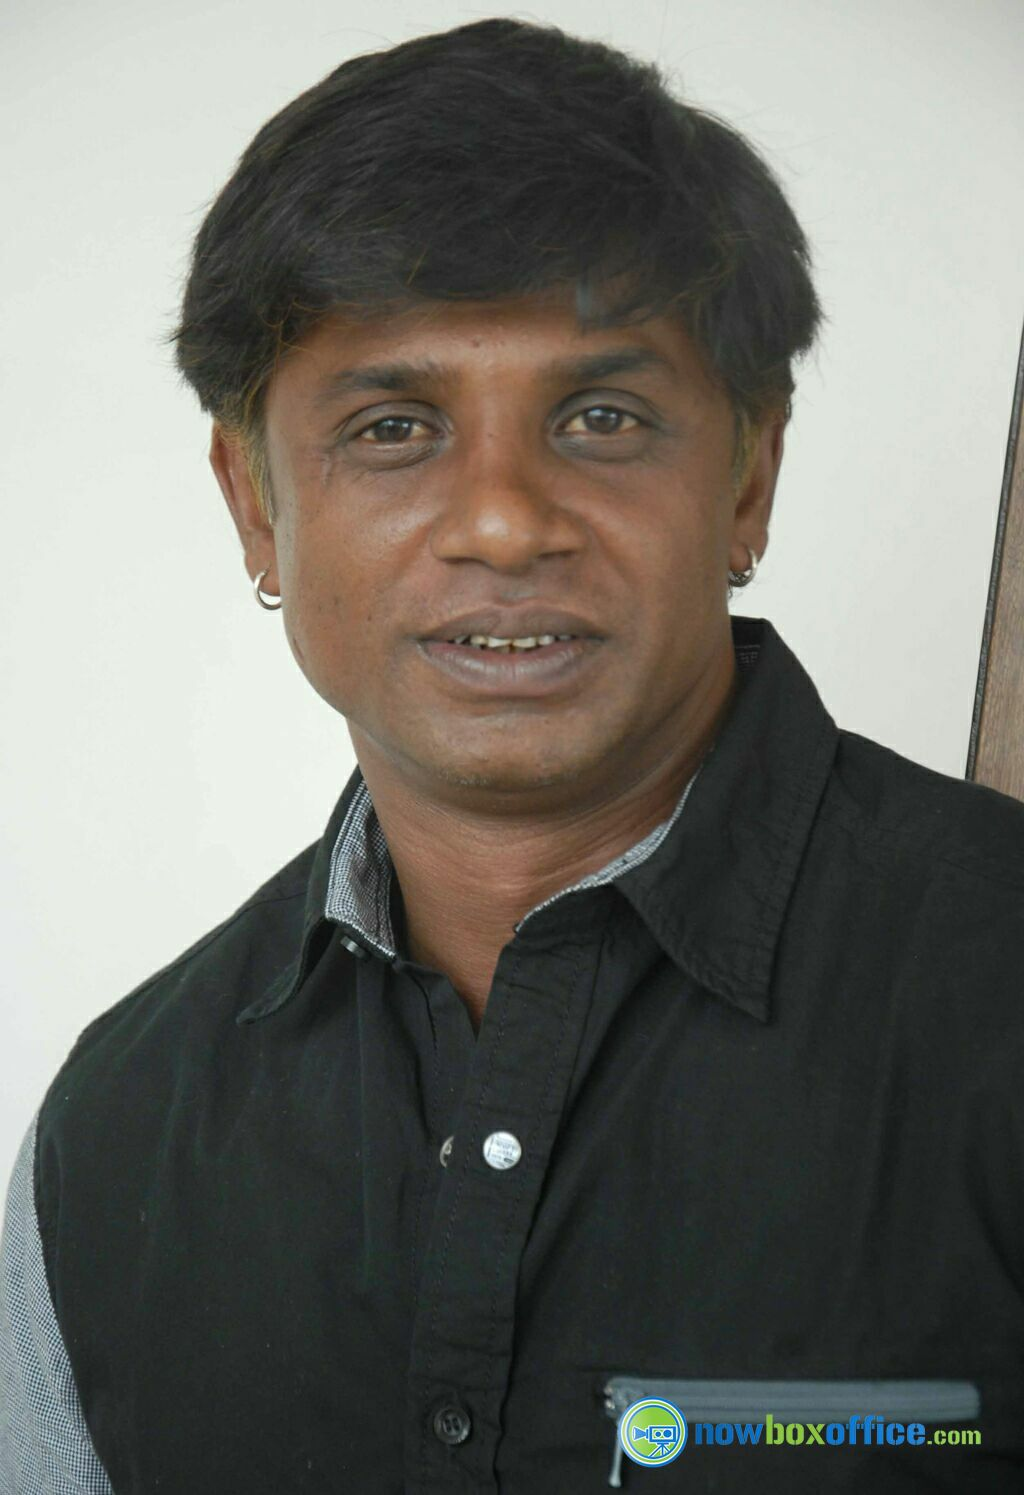 duniya vijay photosduniya vijay 2nd wife, duniya vijay first wife, duniya vijay wife, duniya vijay second wife, duniya vijay wiki, duniya vijay second marriage, duniya vijay photos, duniya vijay caste, duniya vijay family, duniya vijay images, duniya vijay and keerthi, duniya vijay second marriage photos, duniya vijay songs, duniya vijay height, duniya vijay movie, duniya vijay film, duniya vijay videos, duniya vijay six pack, duniya vijay kannada movie, duniya vijay hd images